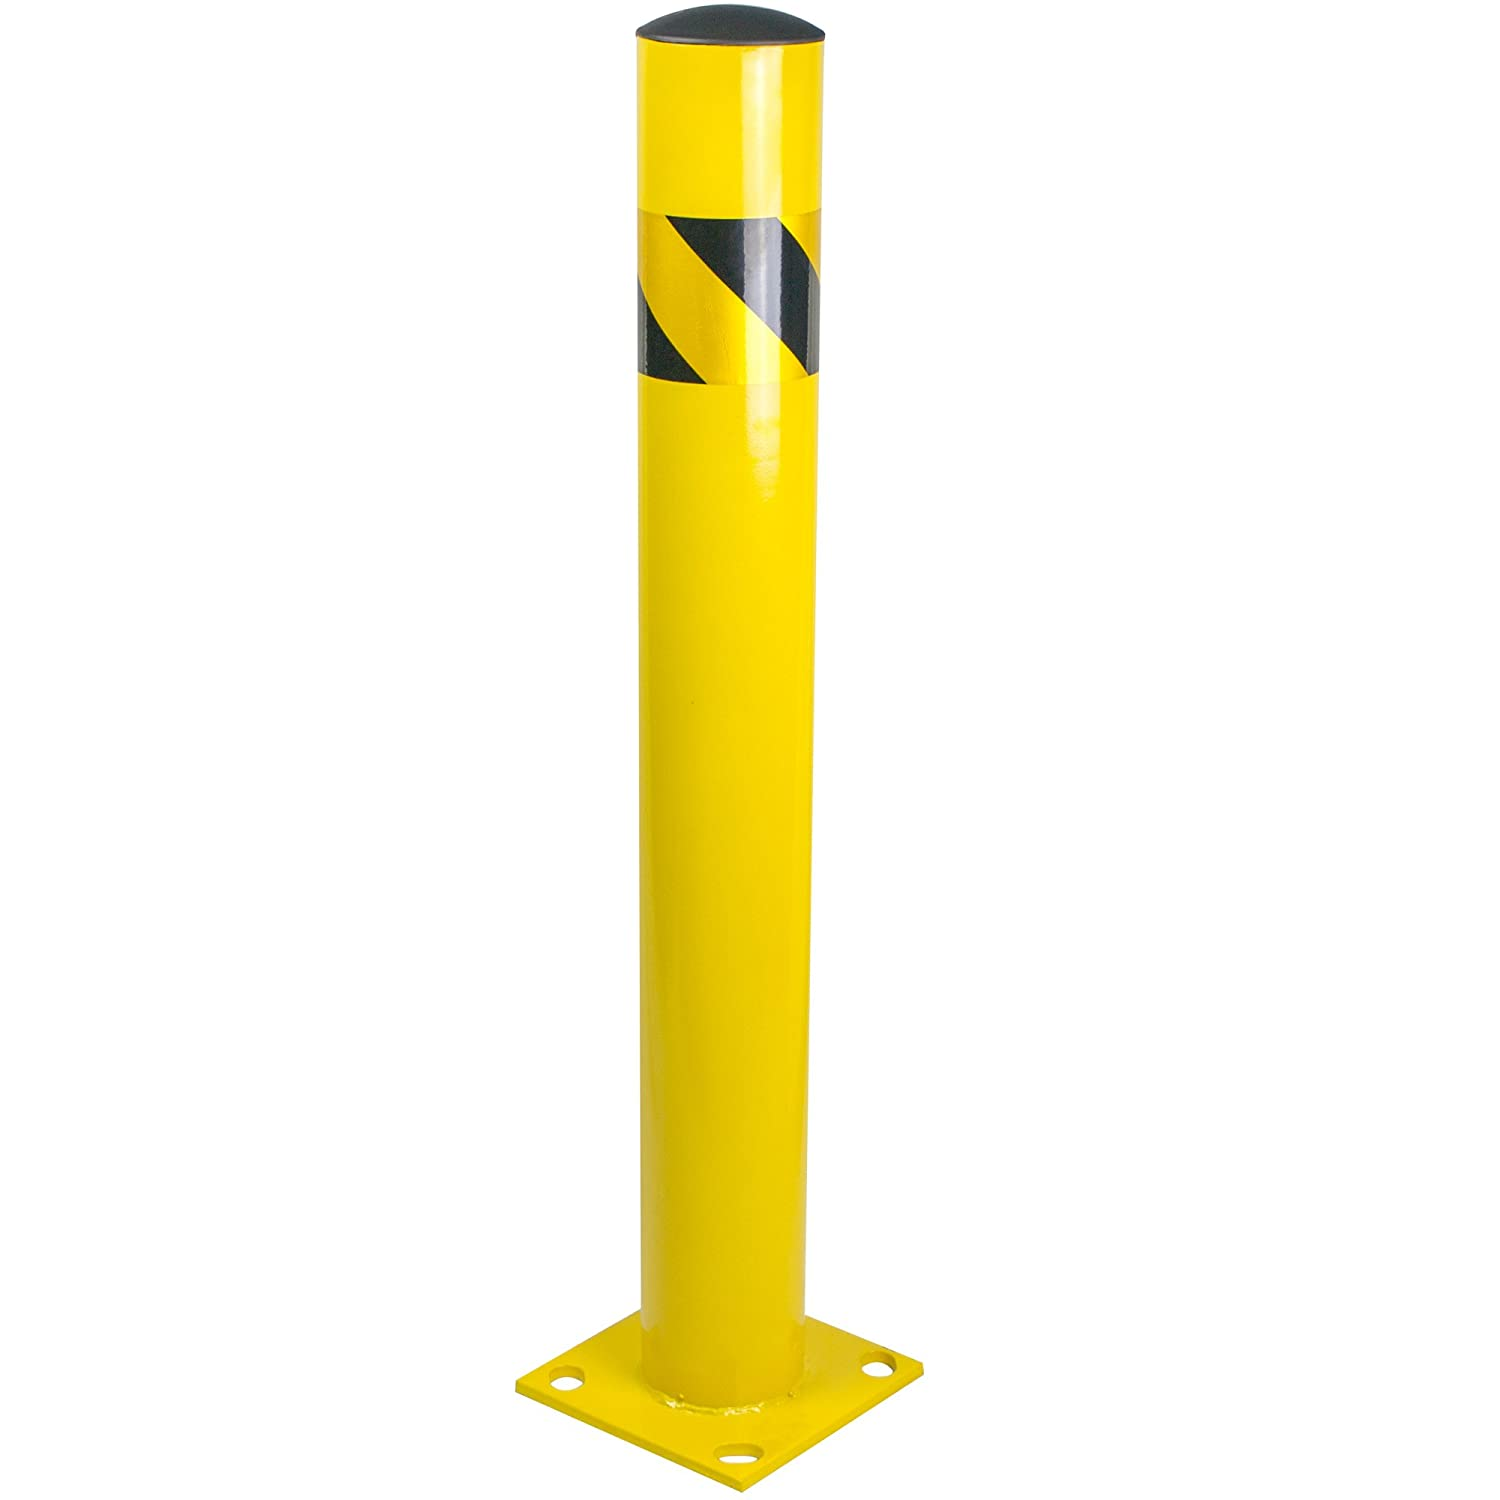 "Bollard Post - Steel Safety Barrier Protection- Yellow Powder Coat 4.5"" Diameter 36"" Tall BW4536"